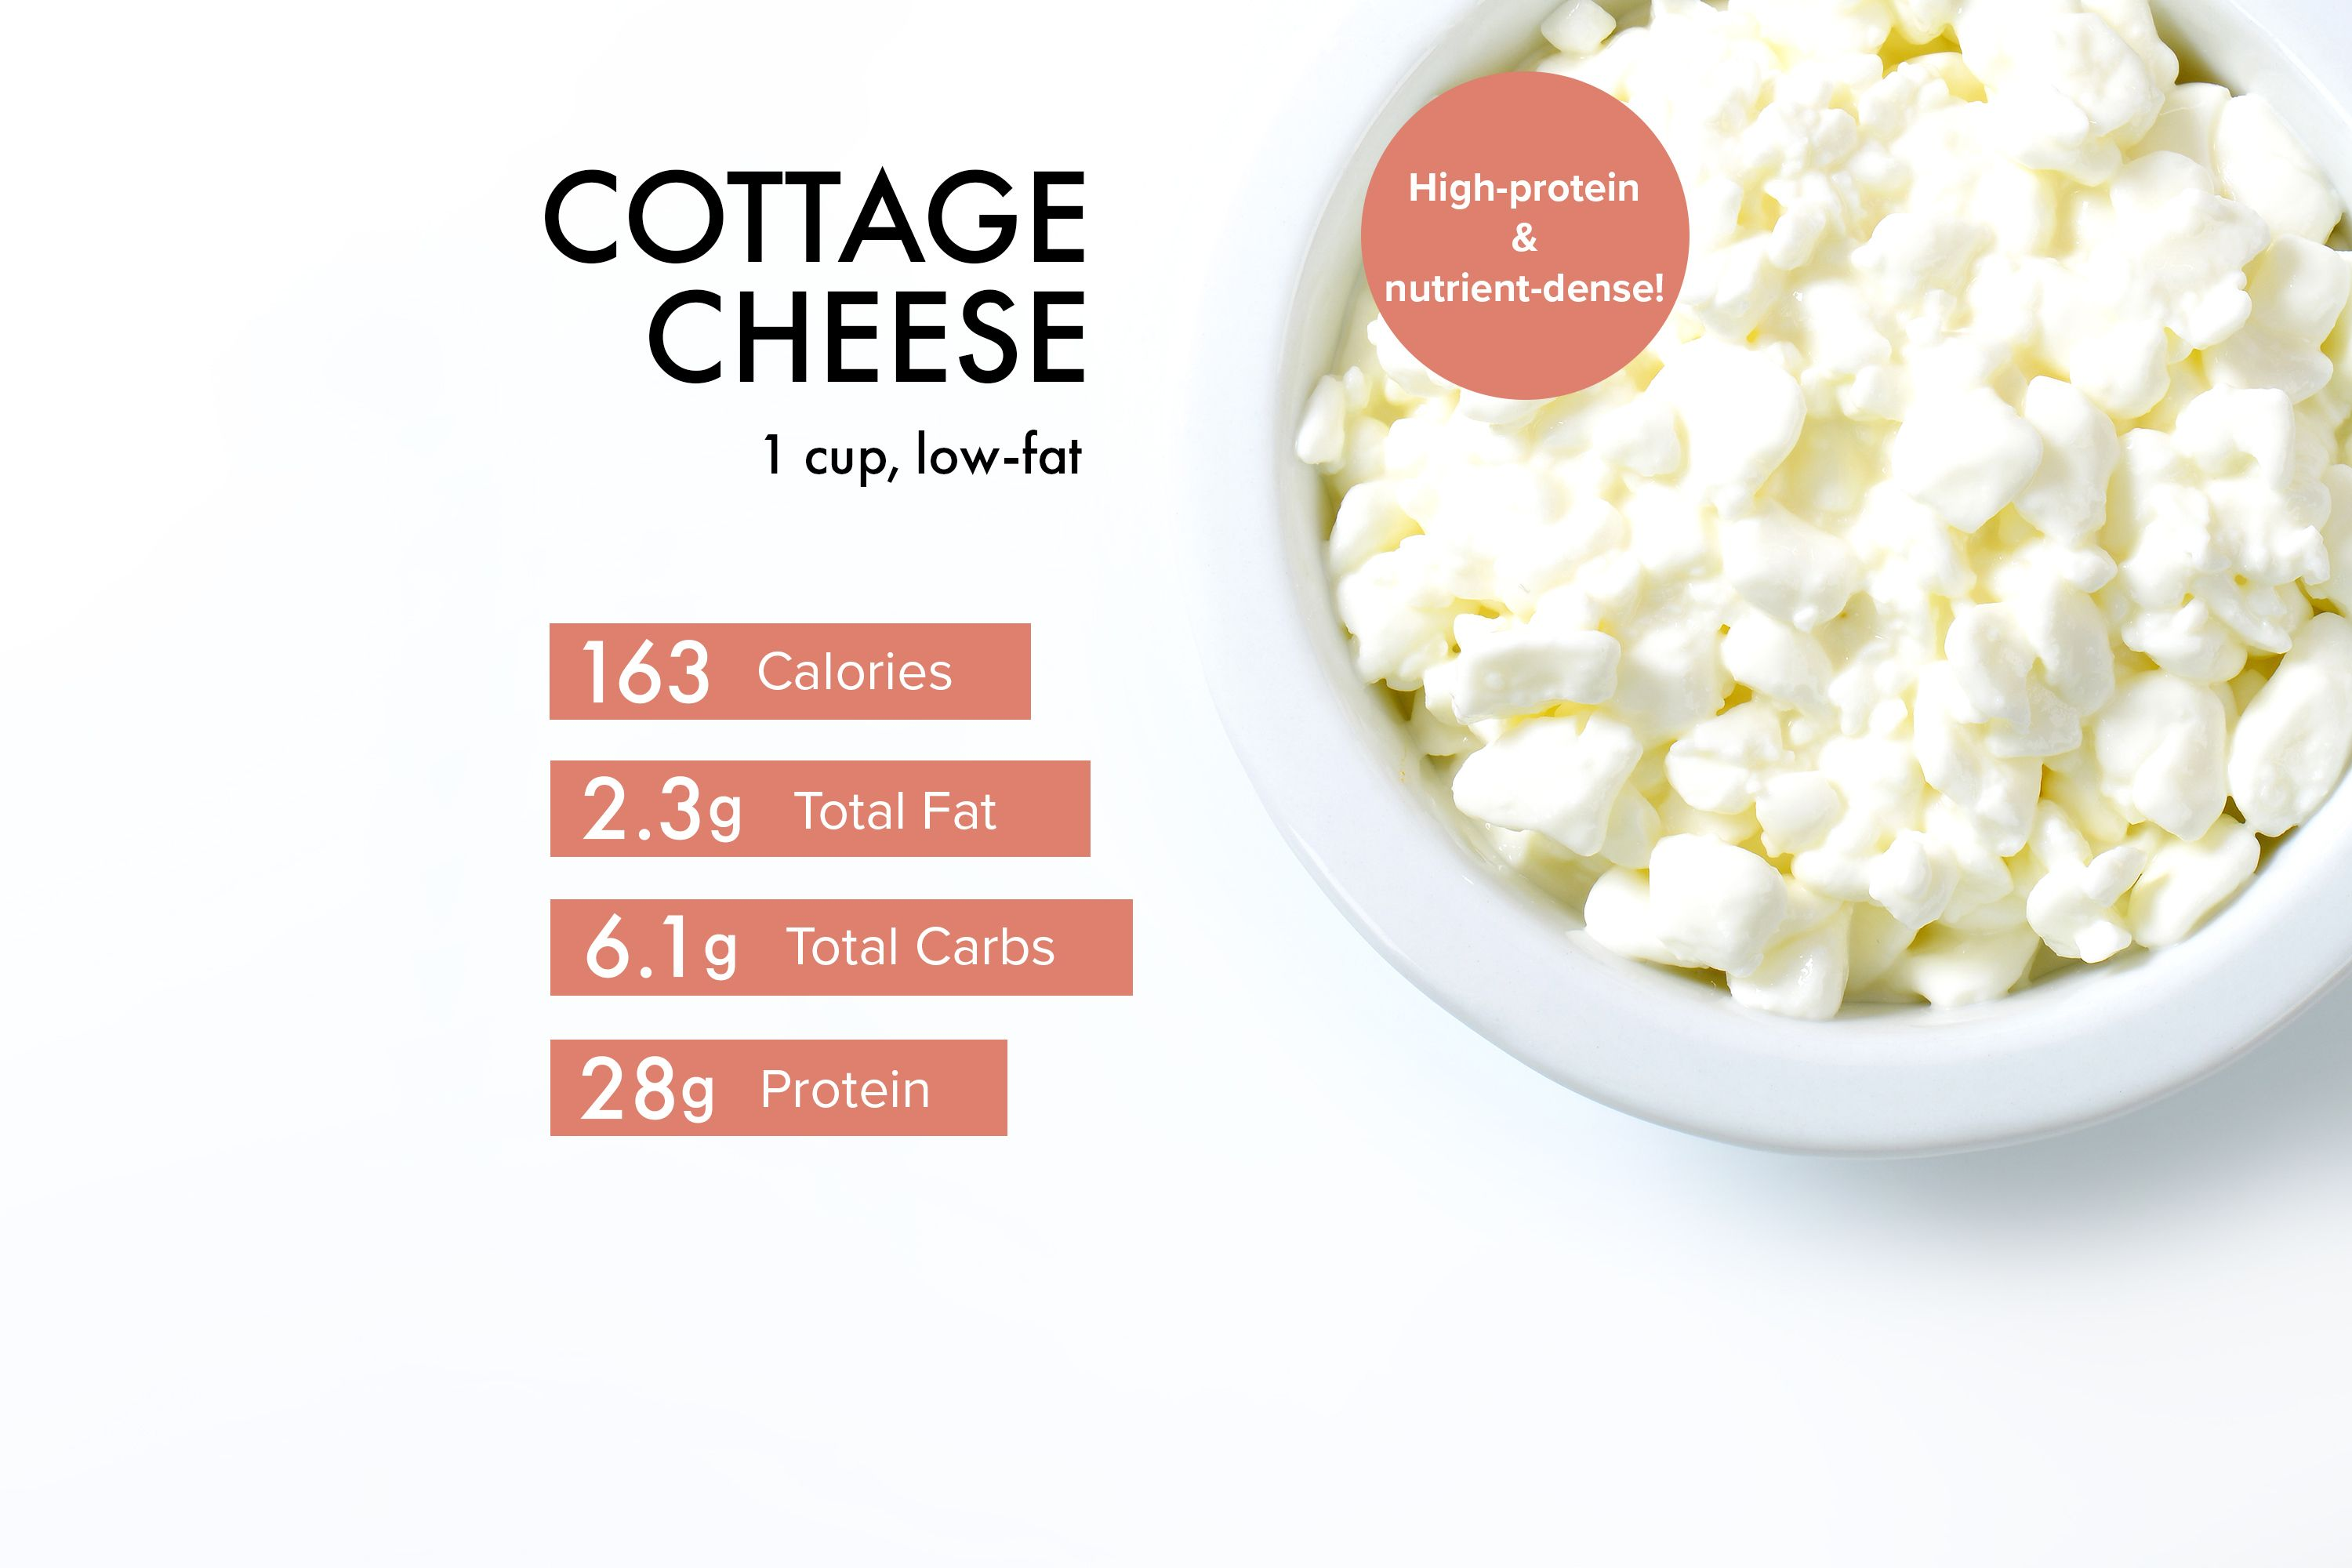 Cottage Cheese Is A Cheap High Protein Snack That S Also Great For Cooking Livestrong Com In 2020 Cottage Cheese Nutrition Facts Cottage Cheese Nutrition Benefits Of Cottage Cheese